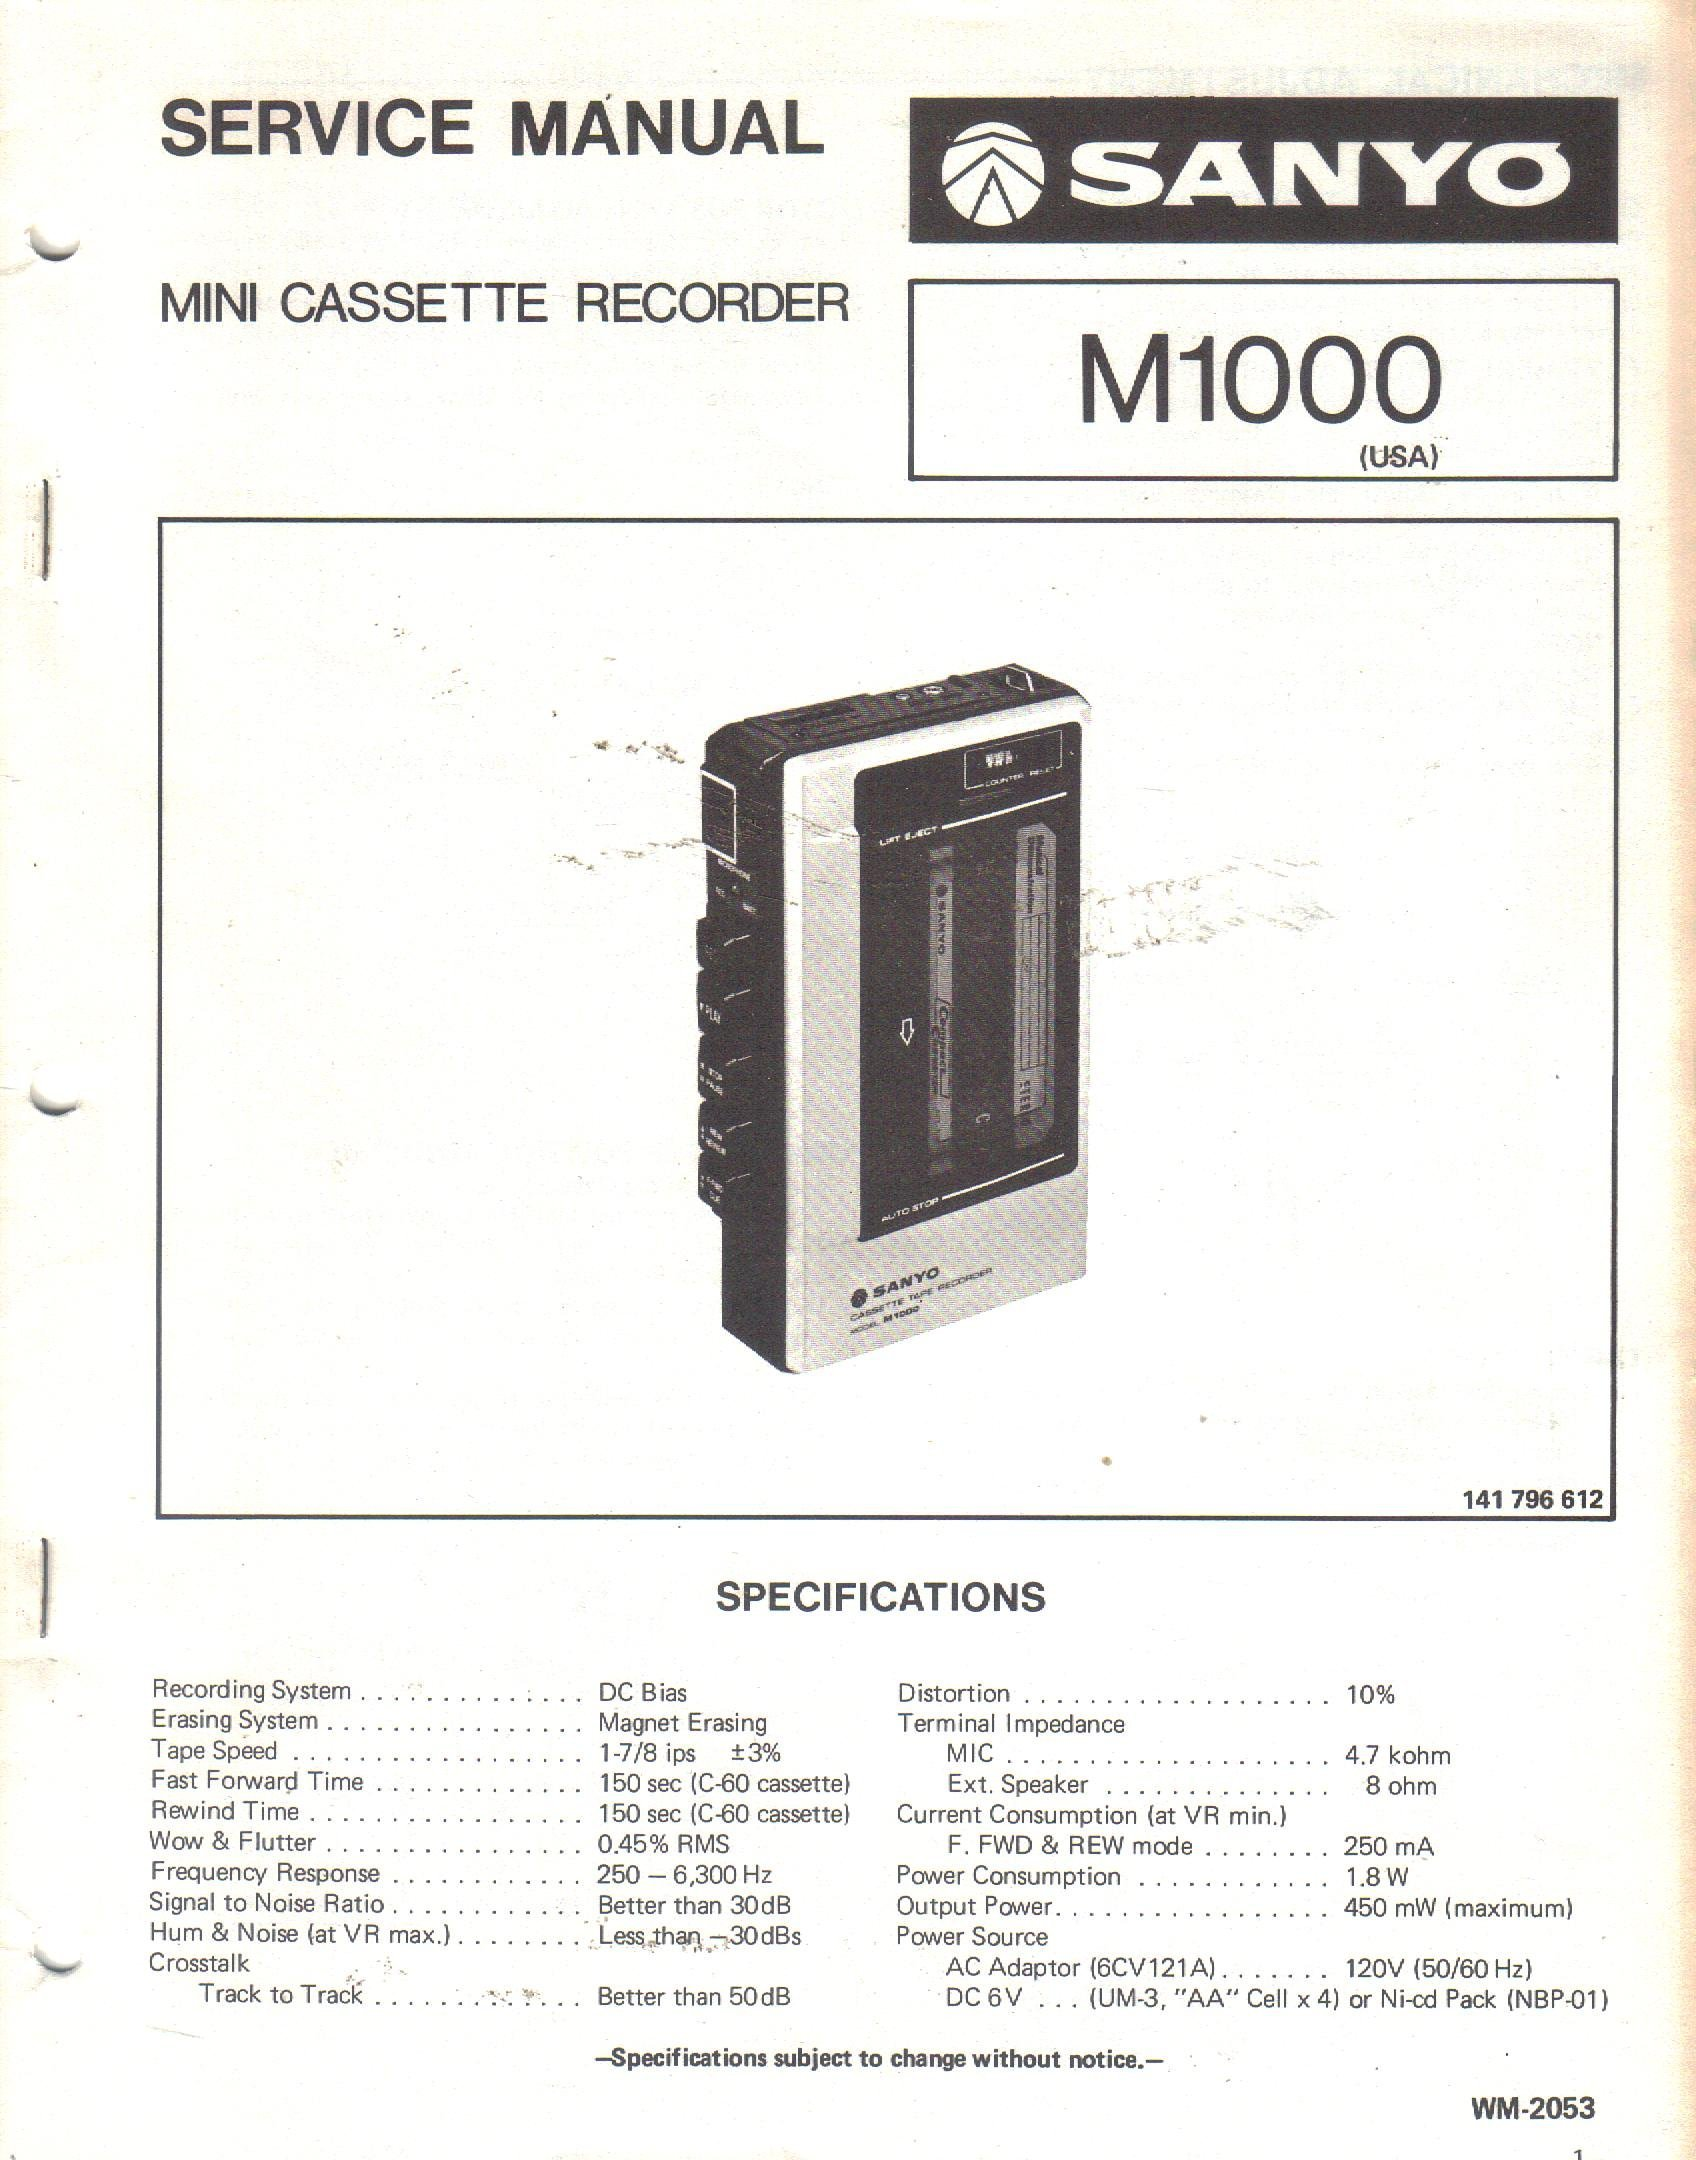 Sanyo M1000 Mini Cassette Recorder Service Manual: Sanyo Electric Inc, not  stated, Sanyo: Amazon.com: Books